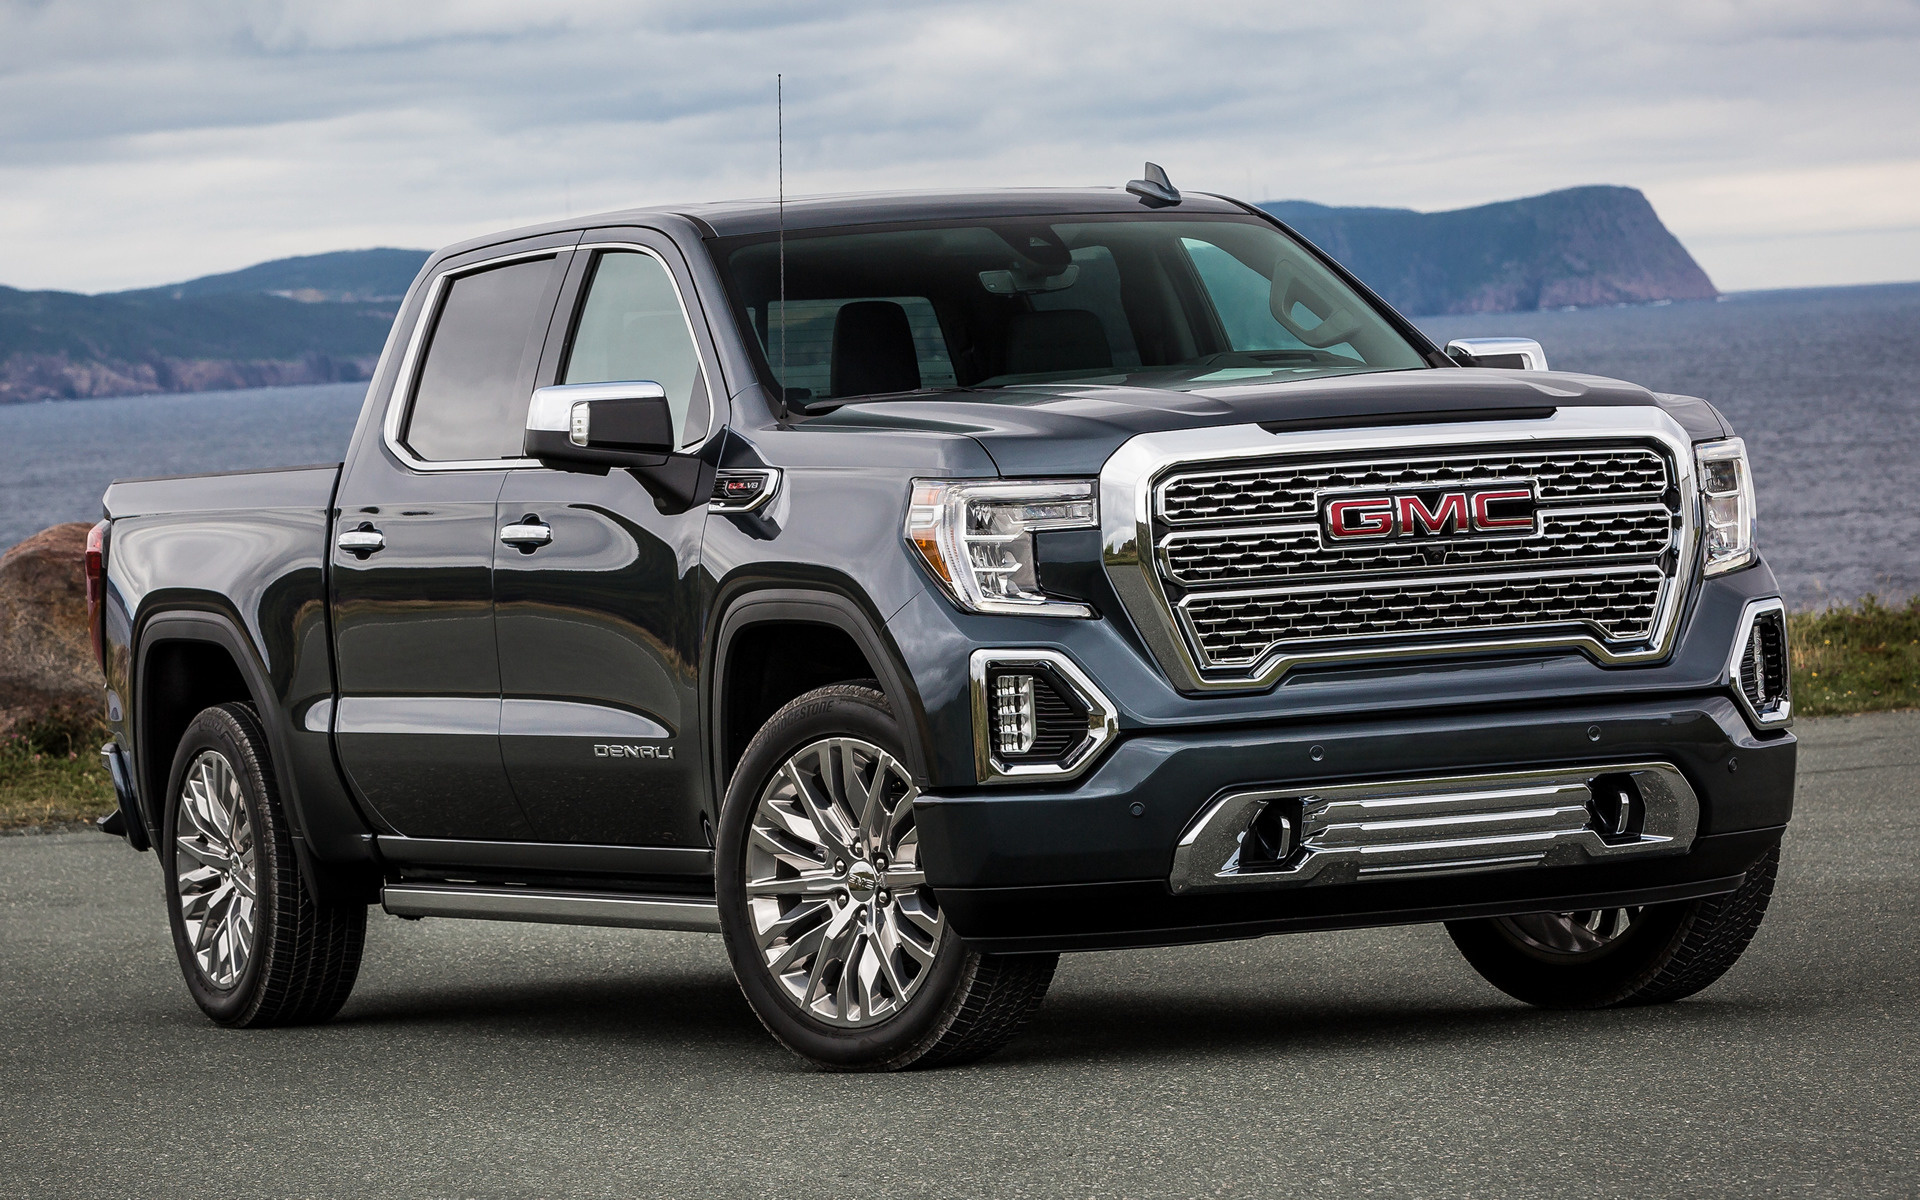 Dodge Crew Cab >> 2019 GMC Sierra Denali Crew Cab - Wallpapers and HD Images ...